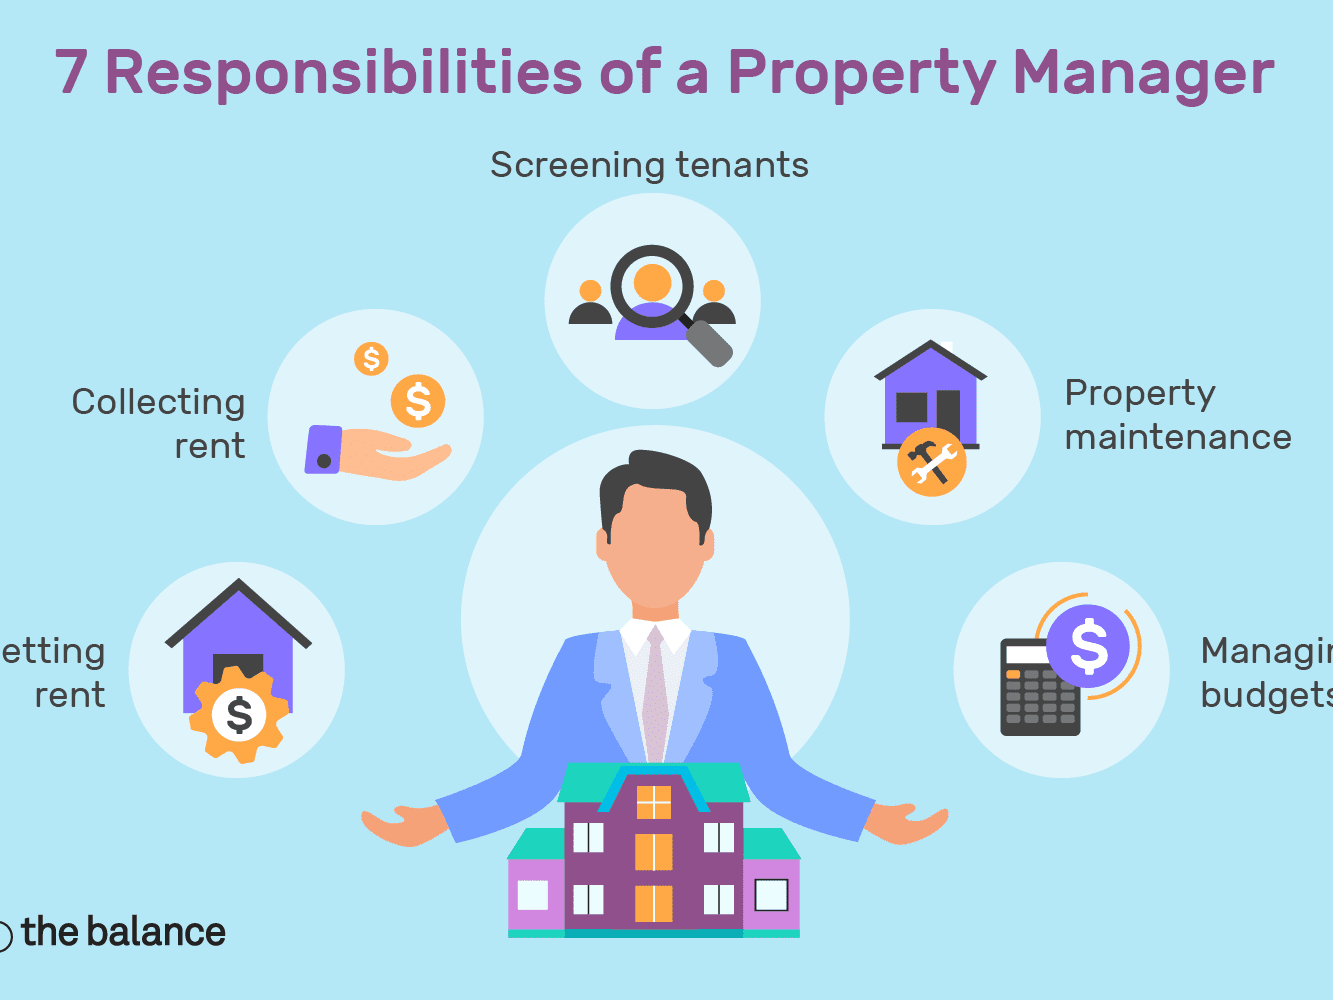 What Is a Property Manager Responsible For